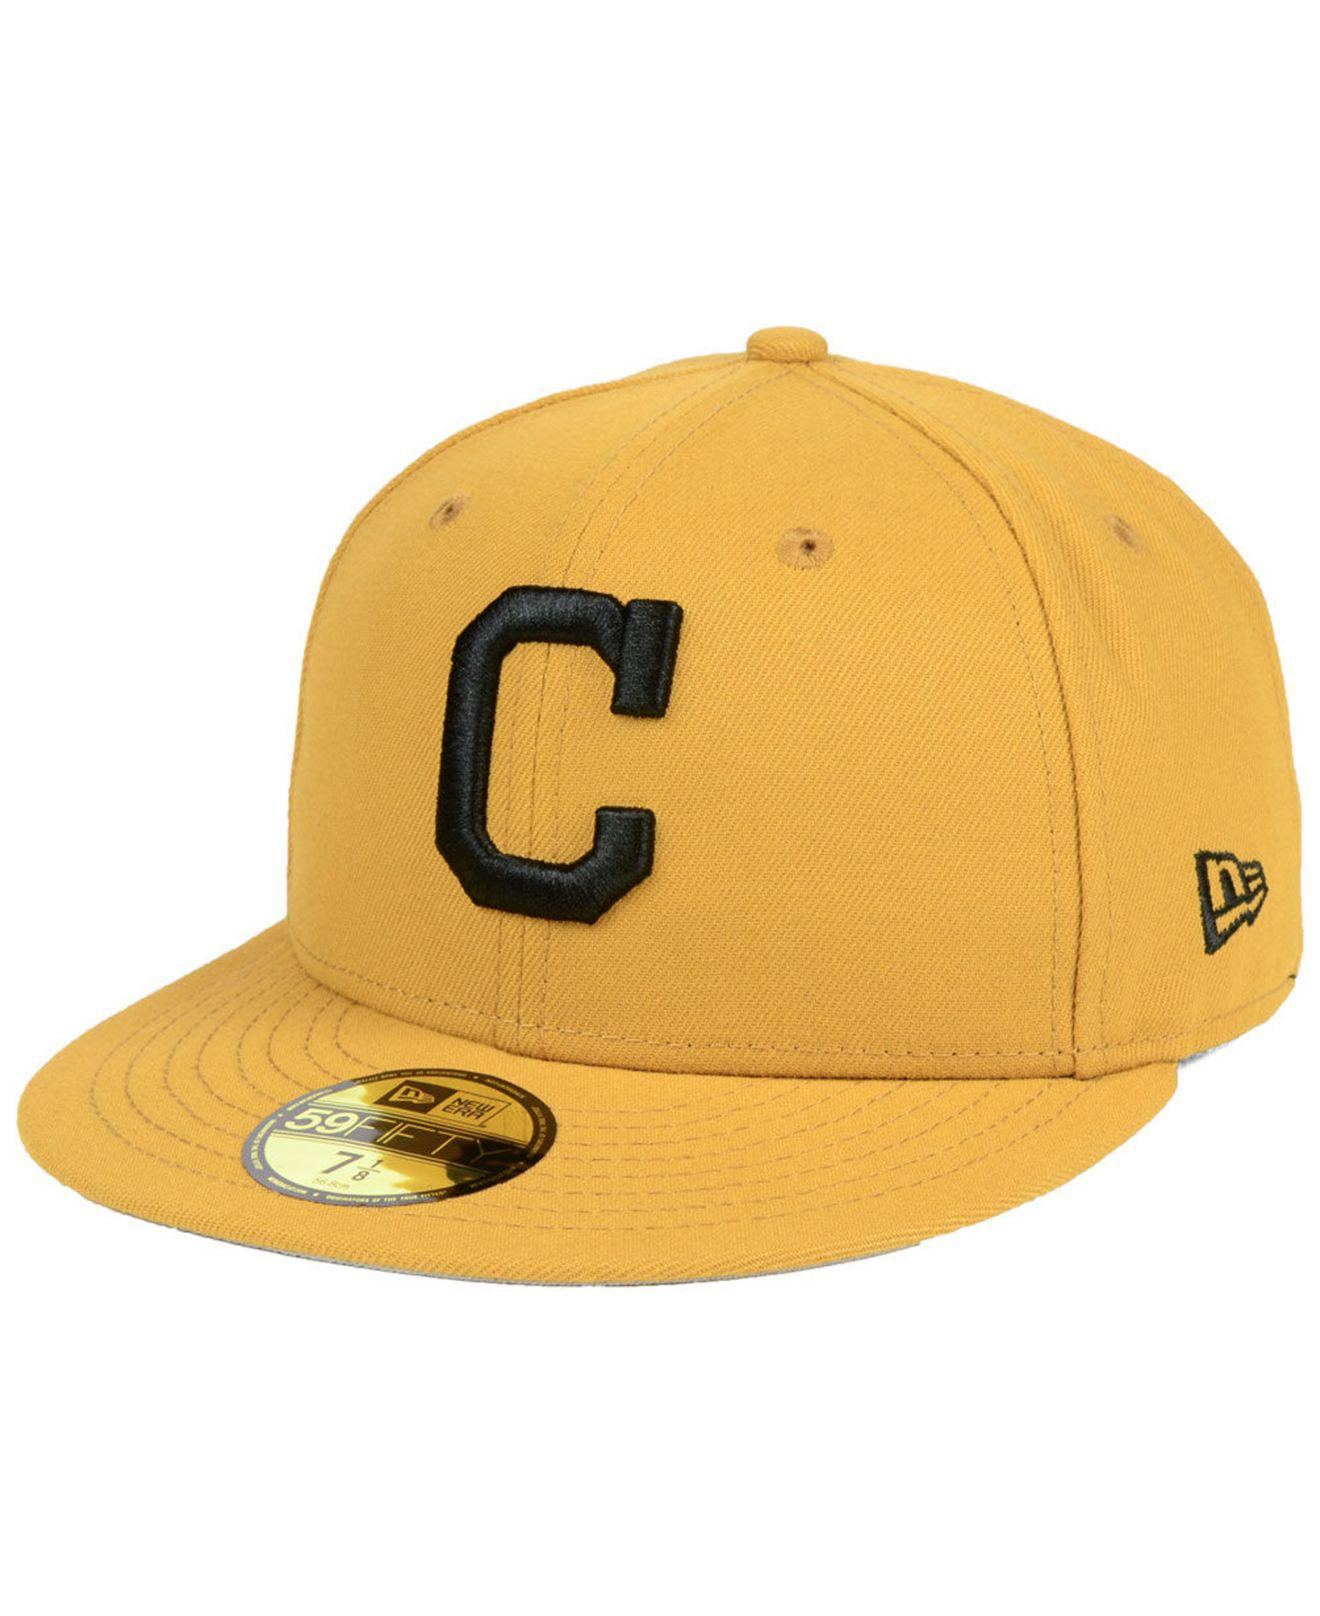 online store c76e3 4fc40 KTZ Cleveland Indians Reverse C-dub 59fifty Fitted Cap in Yellow for ...